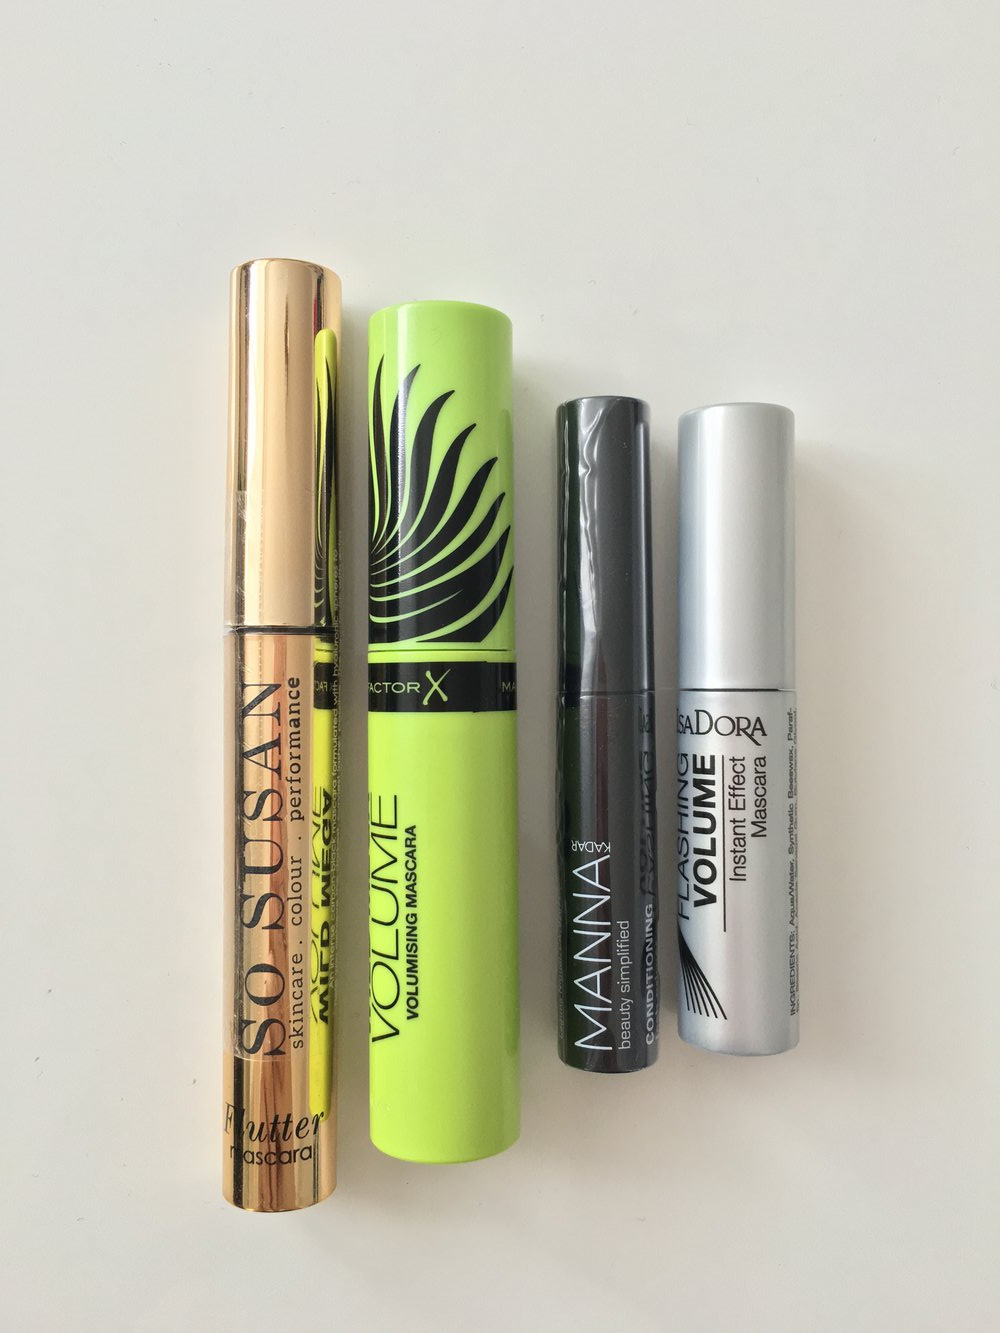 mascara set max factor so susan isadora manna kadar lash primer. Black Bedroom Furniture Sets. Home Design Ideas